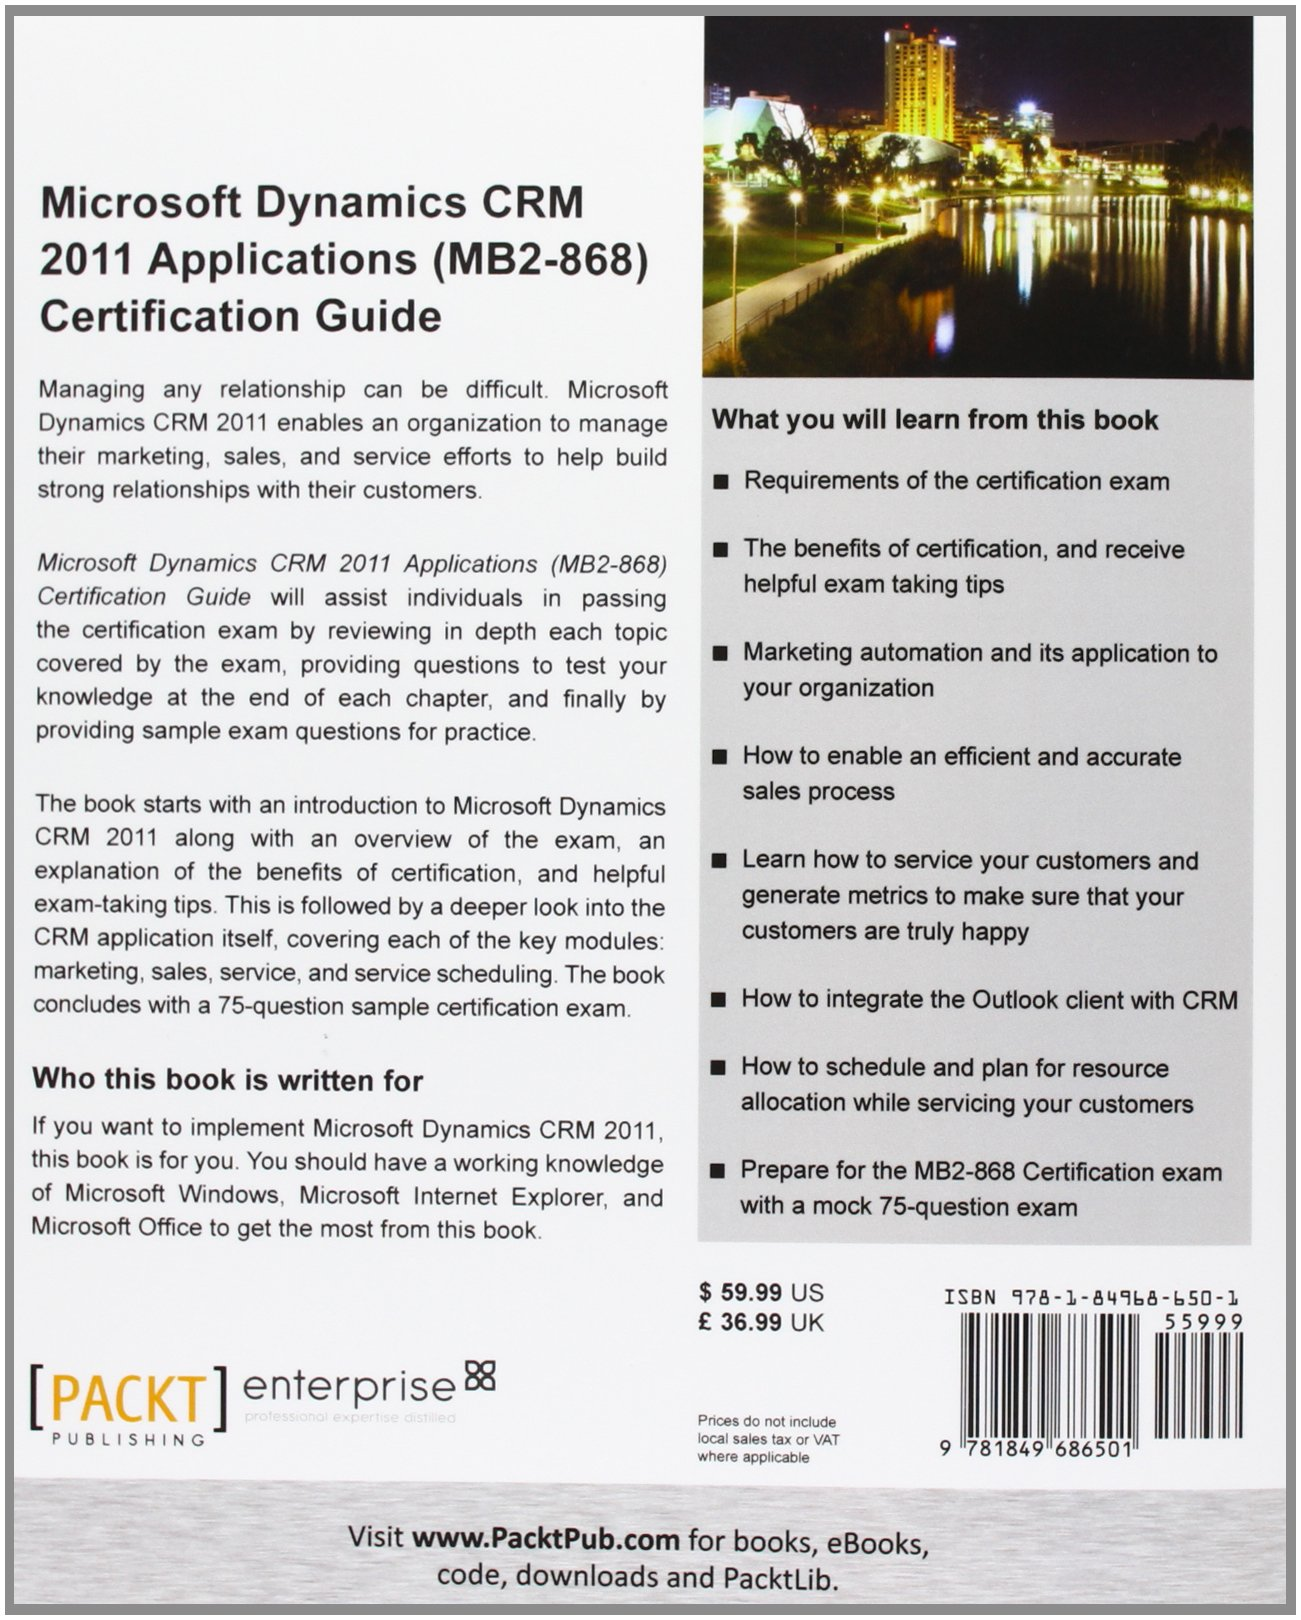 Microsoft dynamics crm 2011 applications mb2 868 certification microsoft dynamics crm 2011 applications mb2 868 certification guide danny varghese 9781849686501 amazon books xflitez Images